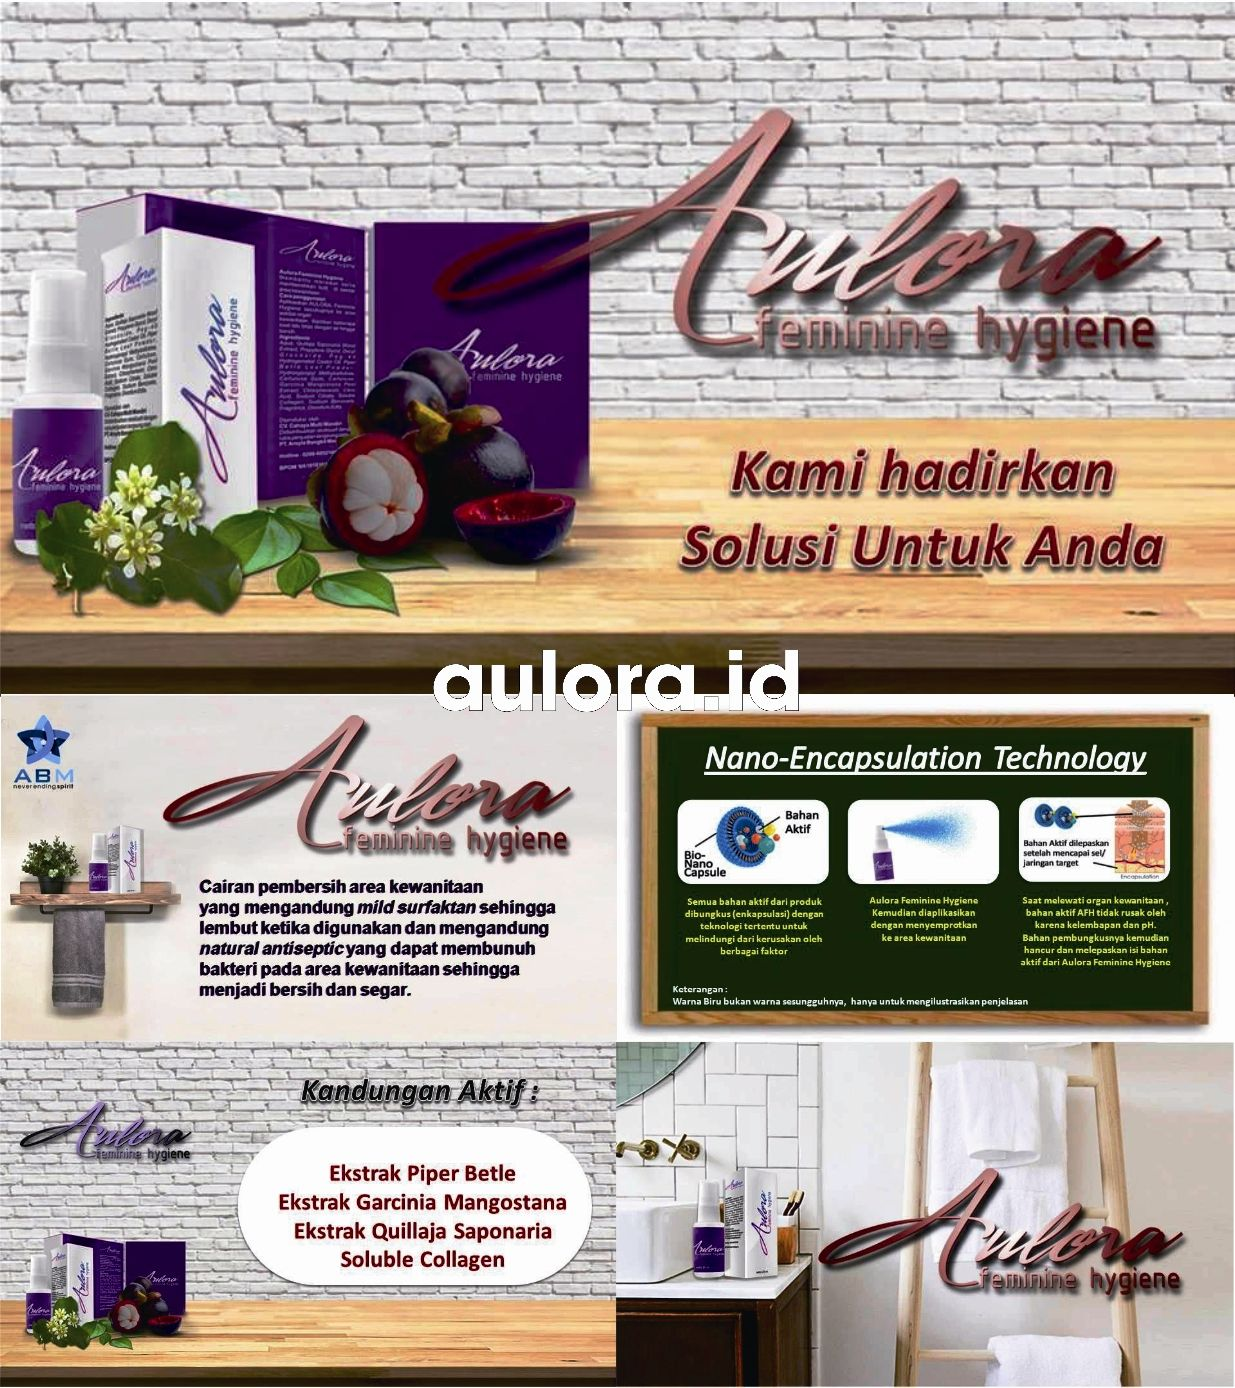 Aulora Feminine Hygiene,  Feminine Hygiene, AFH, Pembersih daerah kewanitaan, organ kewanitaan,  Vagina,  Keputihan,  Kista,  Kista Ovarium,  Miom,  Kanker Serviks, auroratoto, aulora gamat bar soap, aulora band, aulora feminine, feminine hygiene products, feminine hygiene wipes, feminine hygiene products tax, feminine hygiene tips, feminine hygiene spray, feminine hygiene wash, feminine hygiene pads,  Nanoenkapsulasi,  Daun Sirih,  Piper Betle,  Kulit Manggis,  Garcinia Mangostana,  Quillaja Saponaria,  Soluble Collagen,  Collagen,  Kolagen,  Gamat,  Teripang Emas, feminine beauty, feminine logo, feminine style, feminine hygiene v-pet, feminine font, feminine hygiene new test-v, feminine hygiene new gold v, hygiene adalah, hygiene sanitasi, hygiene dan sanitasi, hygiene perorangan, hygiene sanitasi makanan, hygiene kit, hygiene makanan, hygiene sanitasi adalah, higiene industri, pibipibo,  pibipibo adalah, pibipibo sabun collagen, pibipibo gamat spray manfaatnya, pibipibo sabun, pibipibo harga, pibipibo marketing plan, pibipibo green coffee, pibipibo review, arsyla bangkit mandiri,